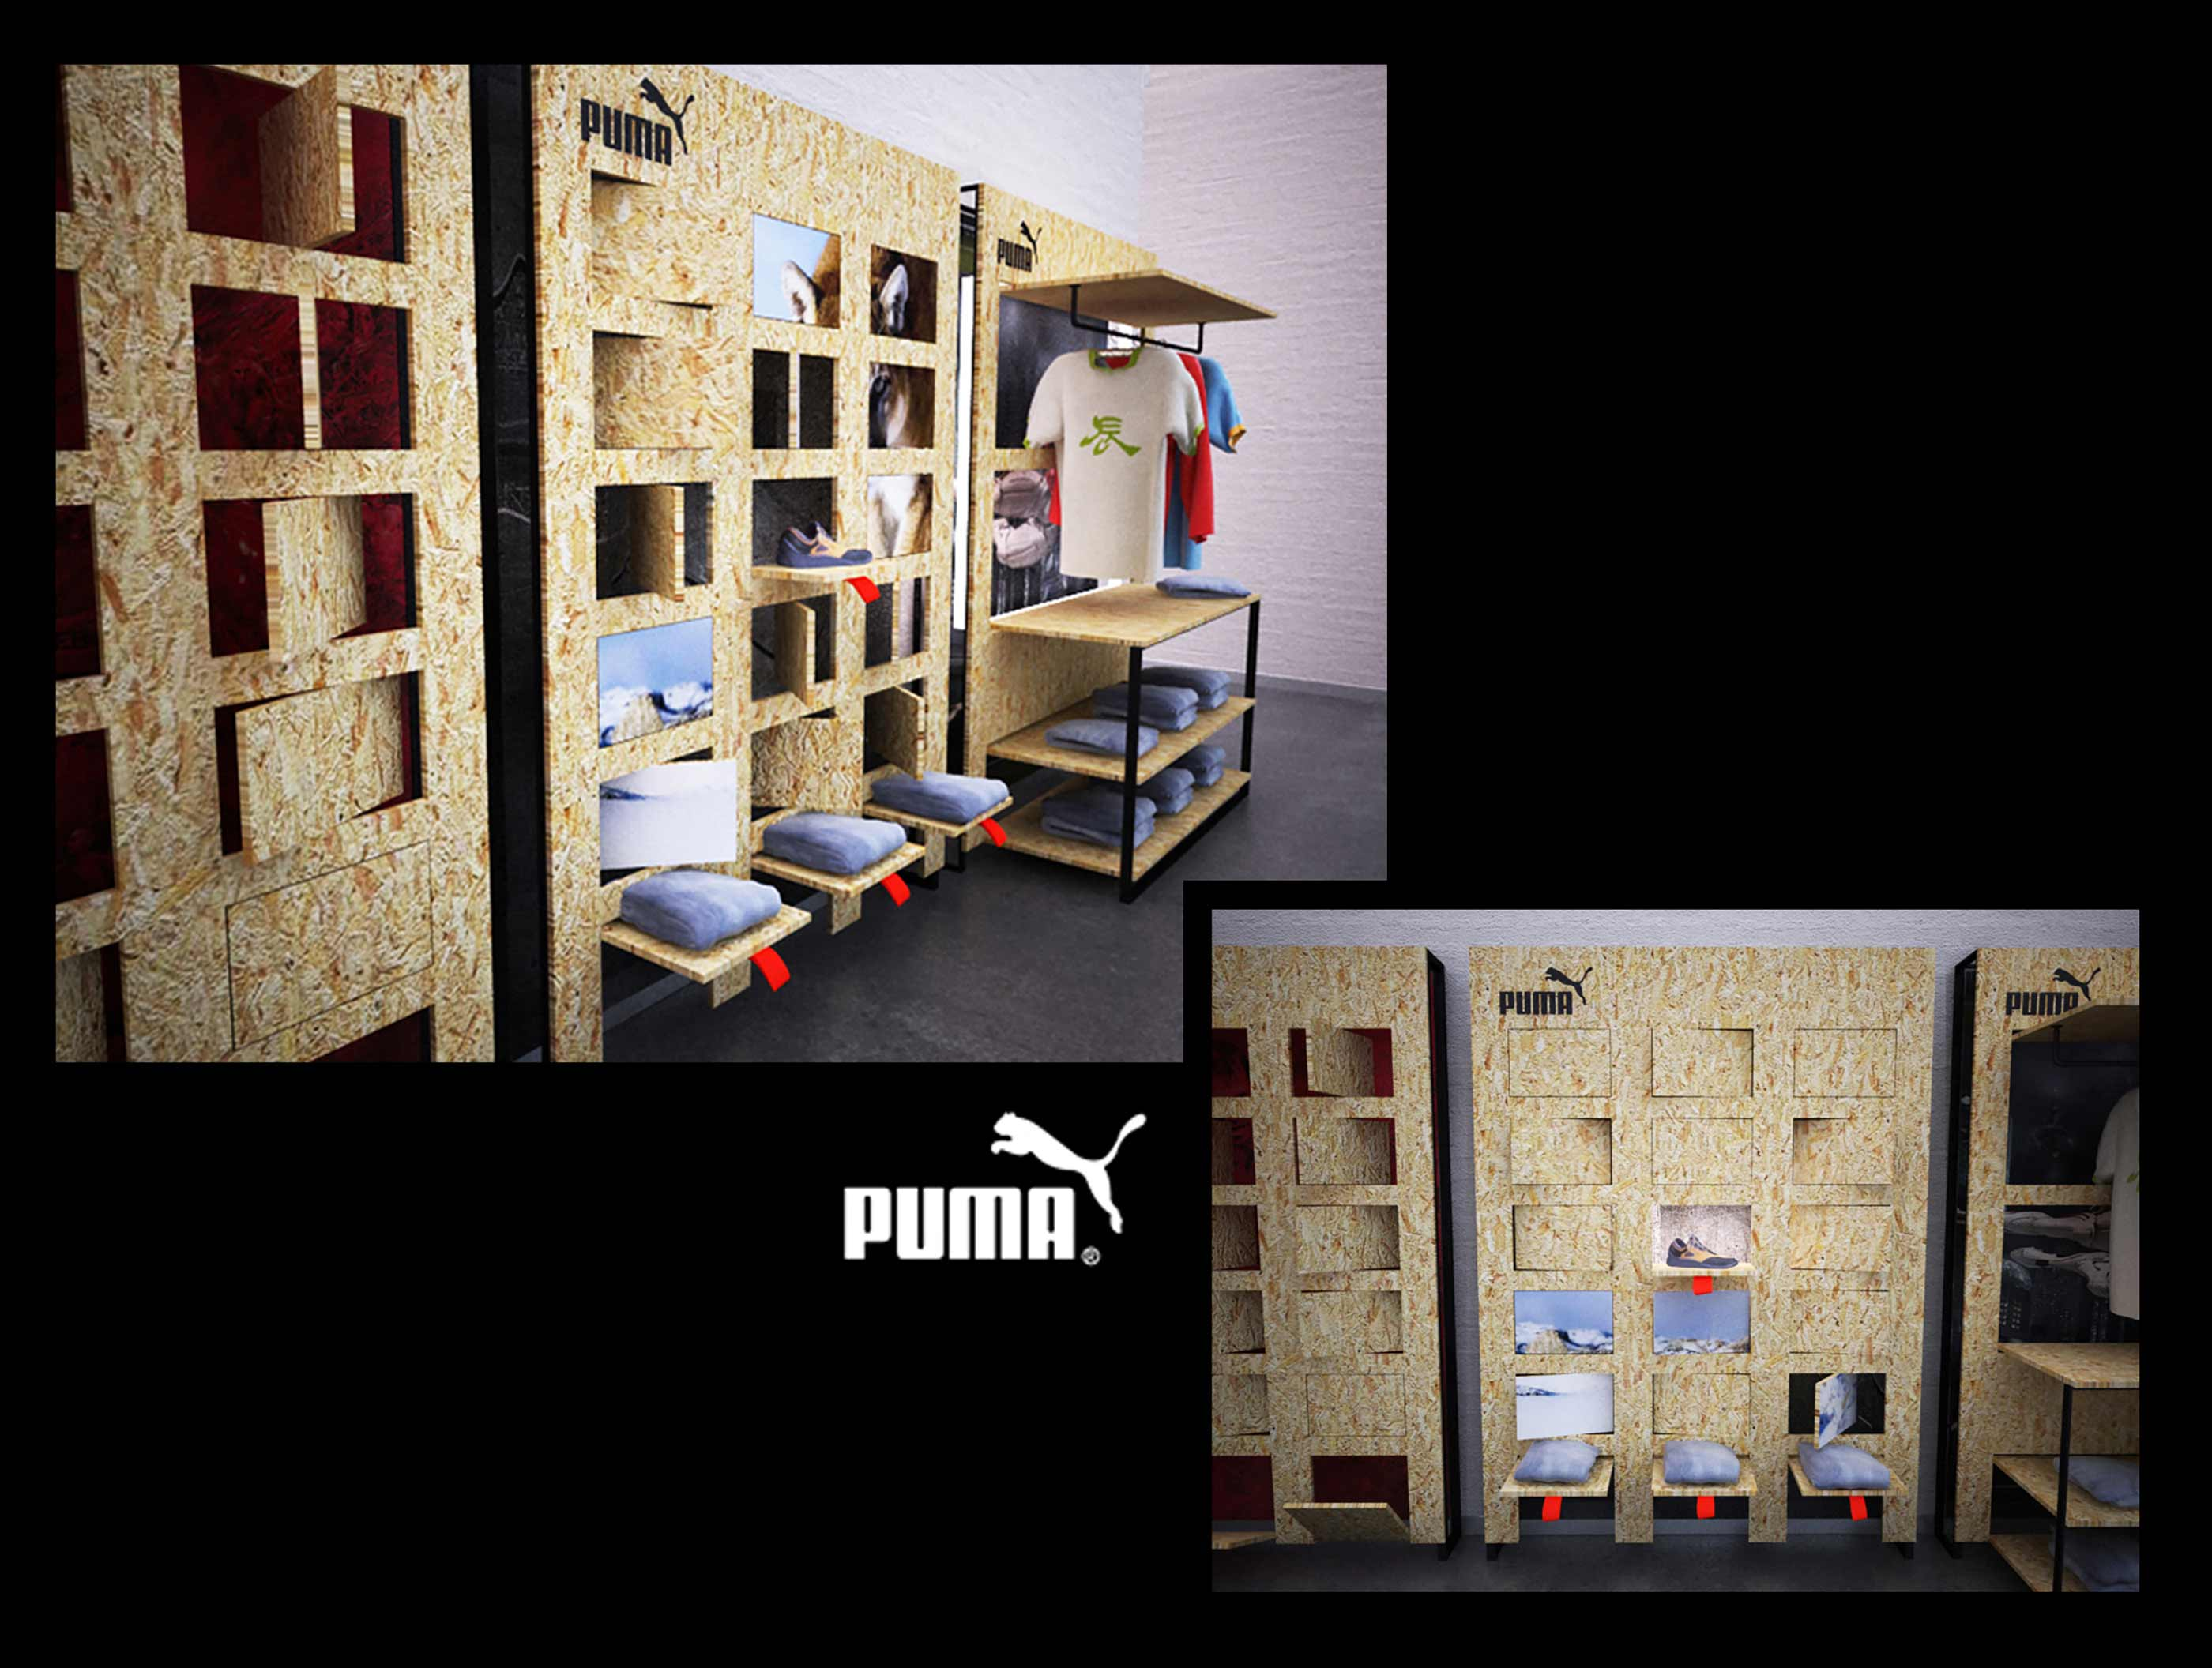 Puma - branding interior fit out retail design